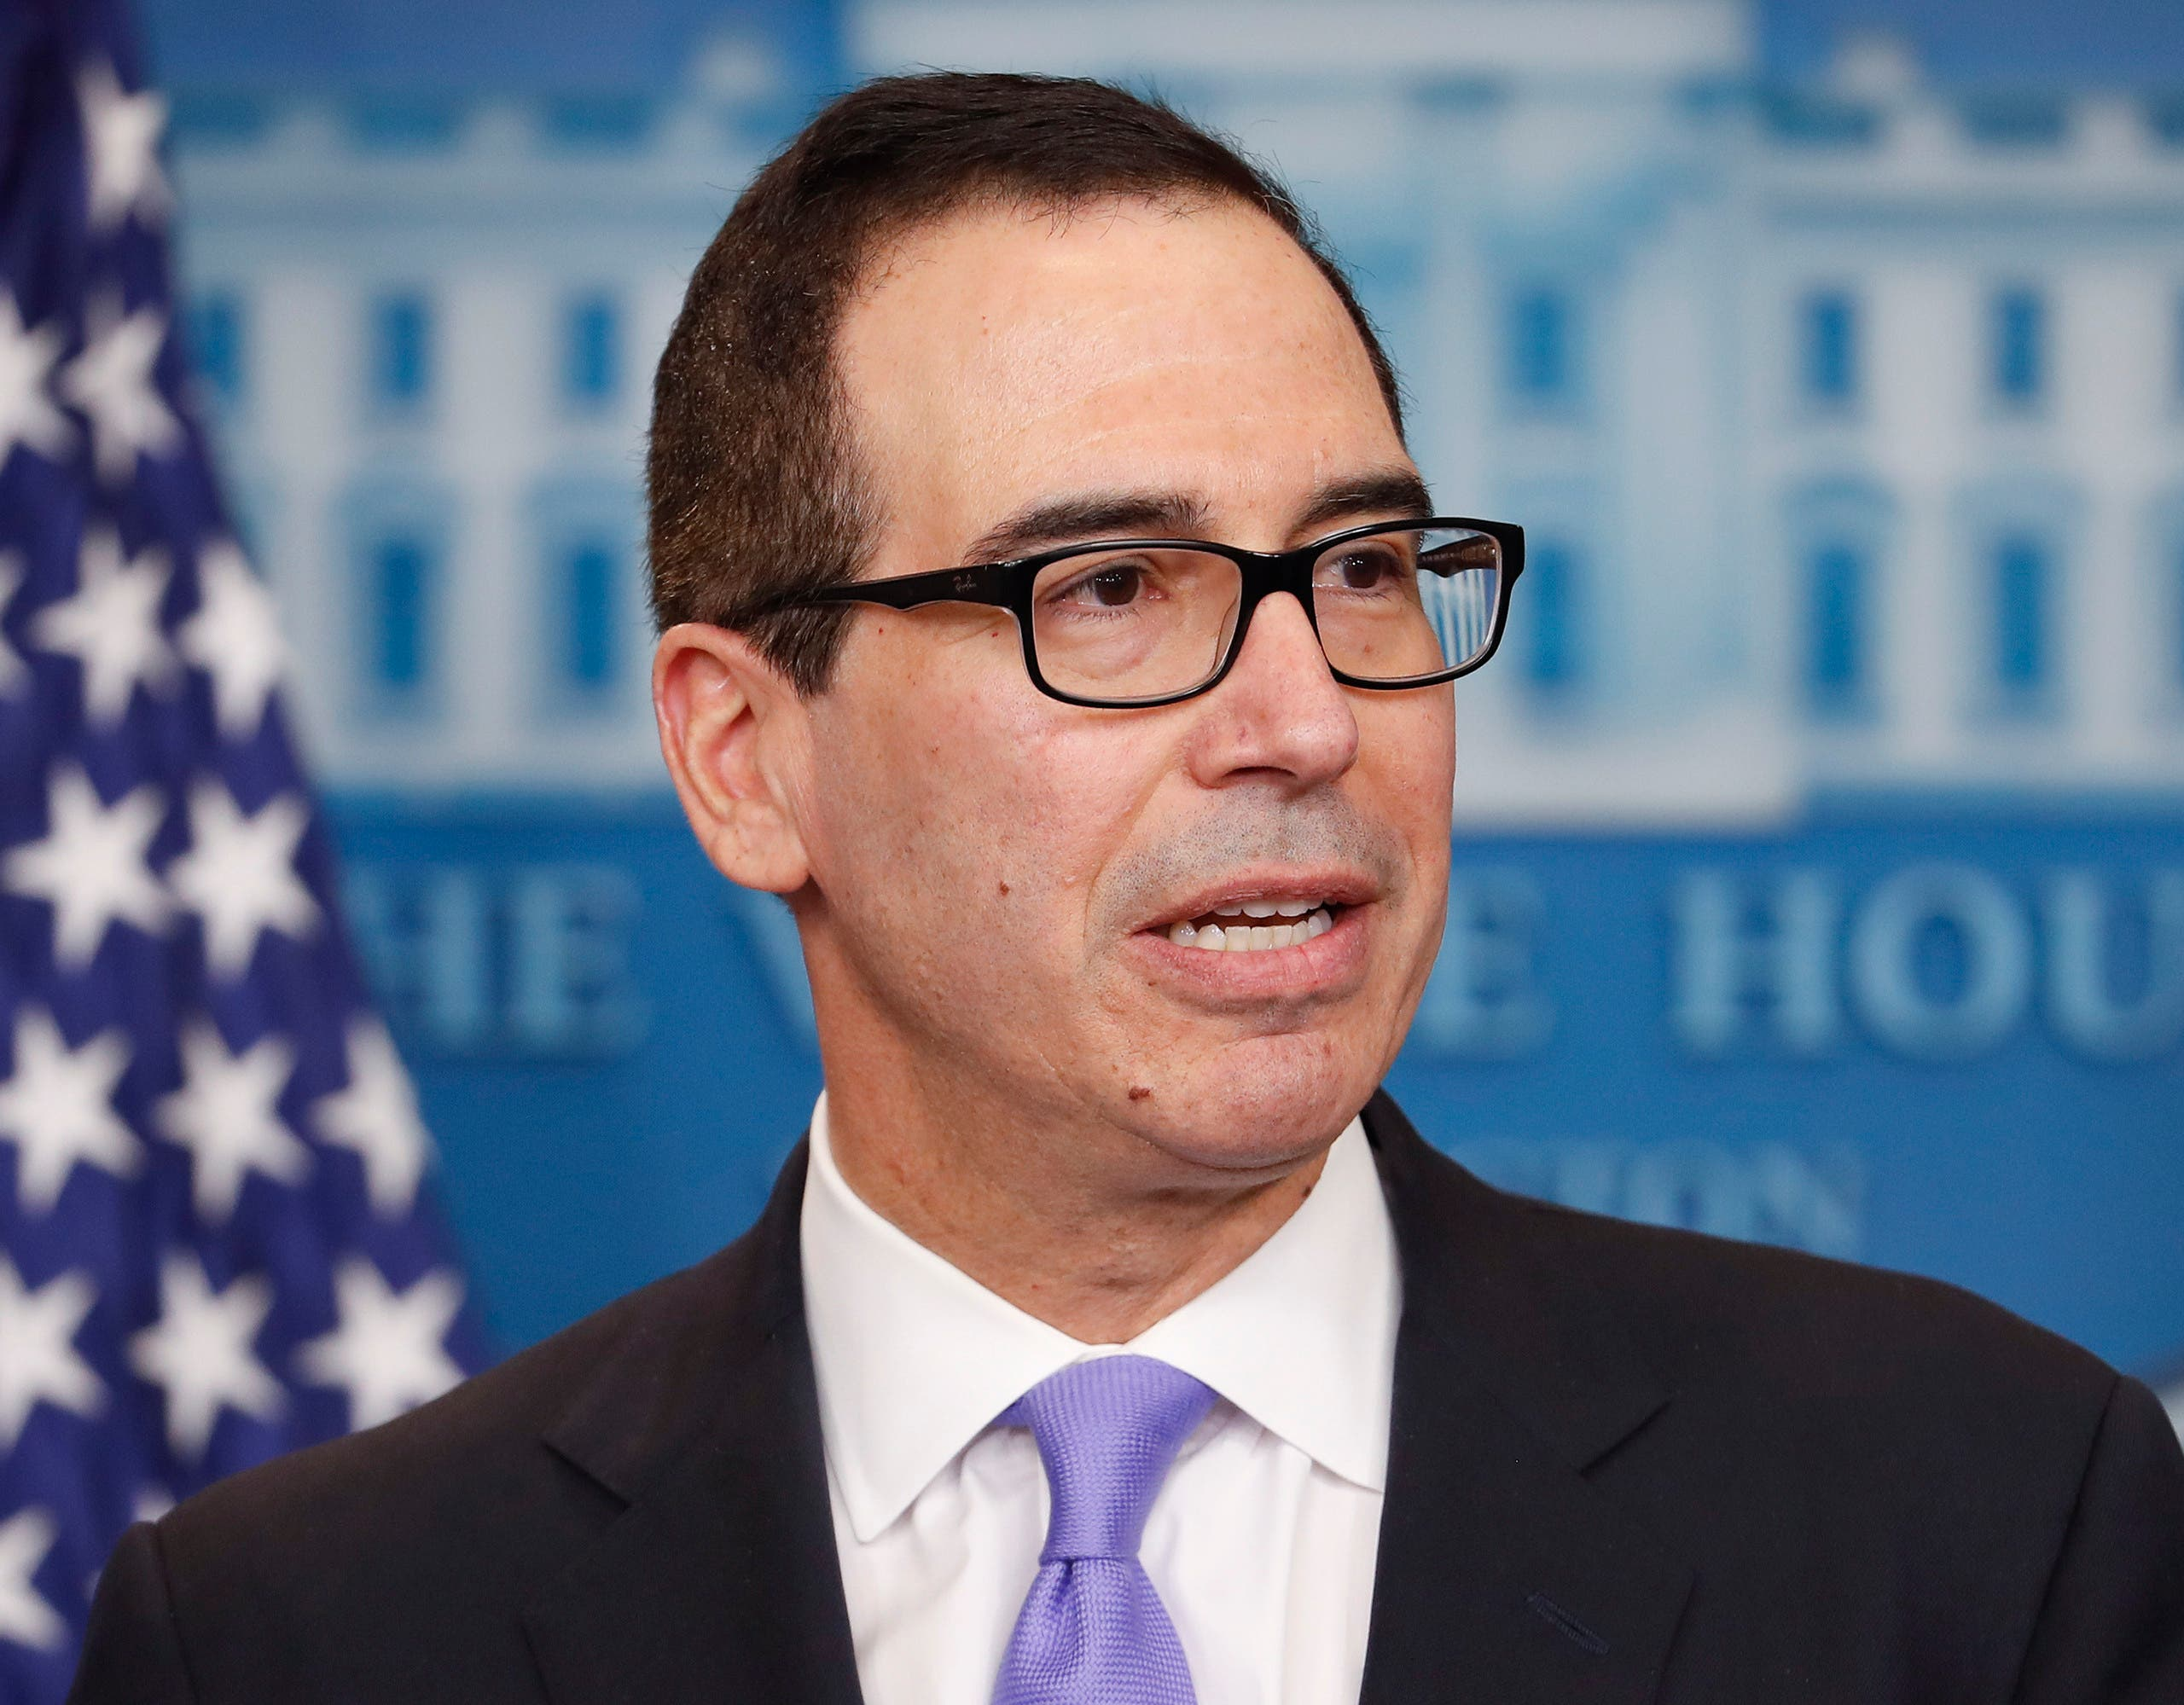 Treasury Secretary Steven Mnuchin speaks to the media during the daily briefing in the Brady Press Briefing Room of the White House in Washington, Tuesday, Feb. 14, 2017. (AP)